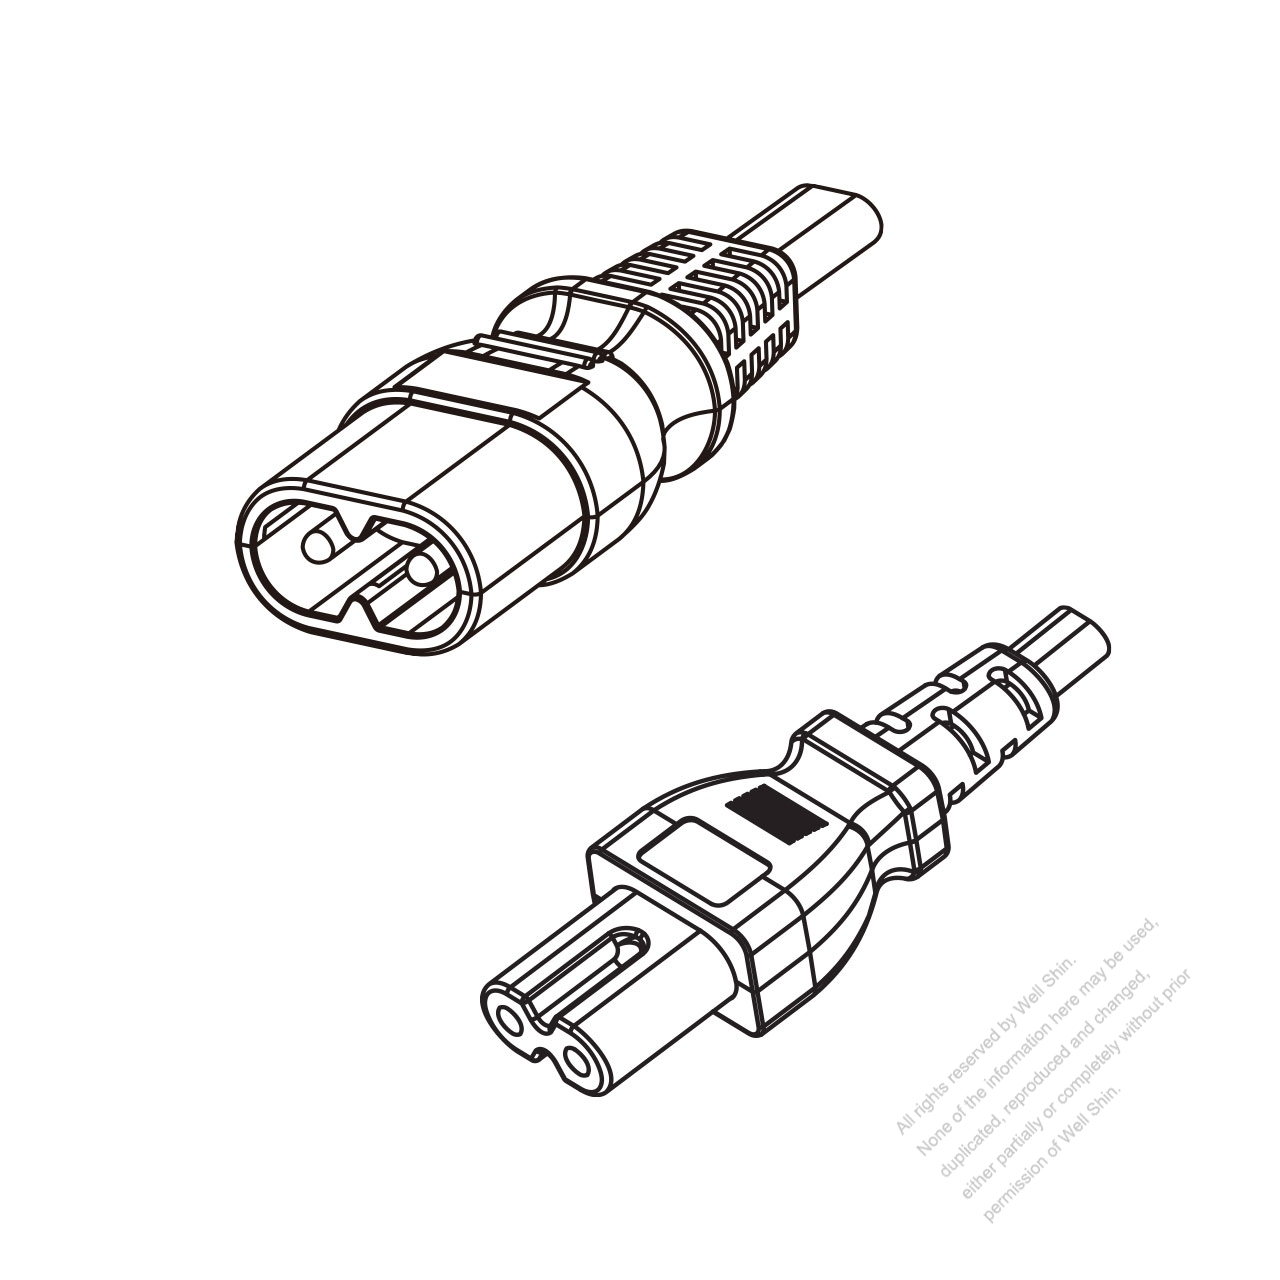 Us Canada 2 Pin Iec 320 Sheet C Plug To Iec 320 C7 Power